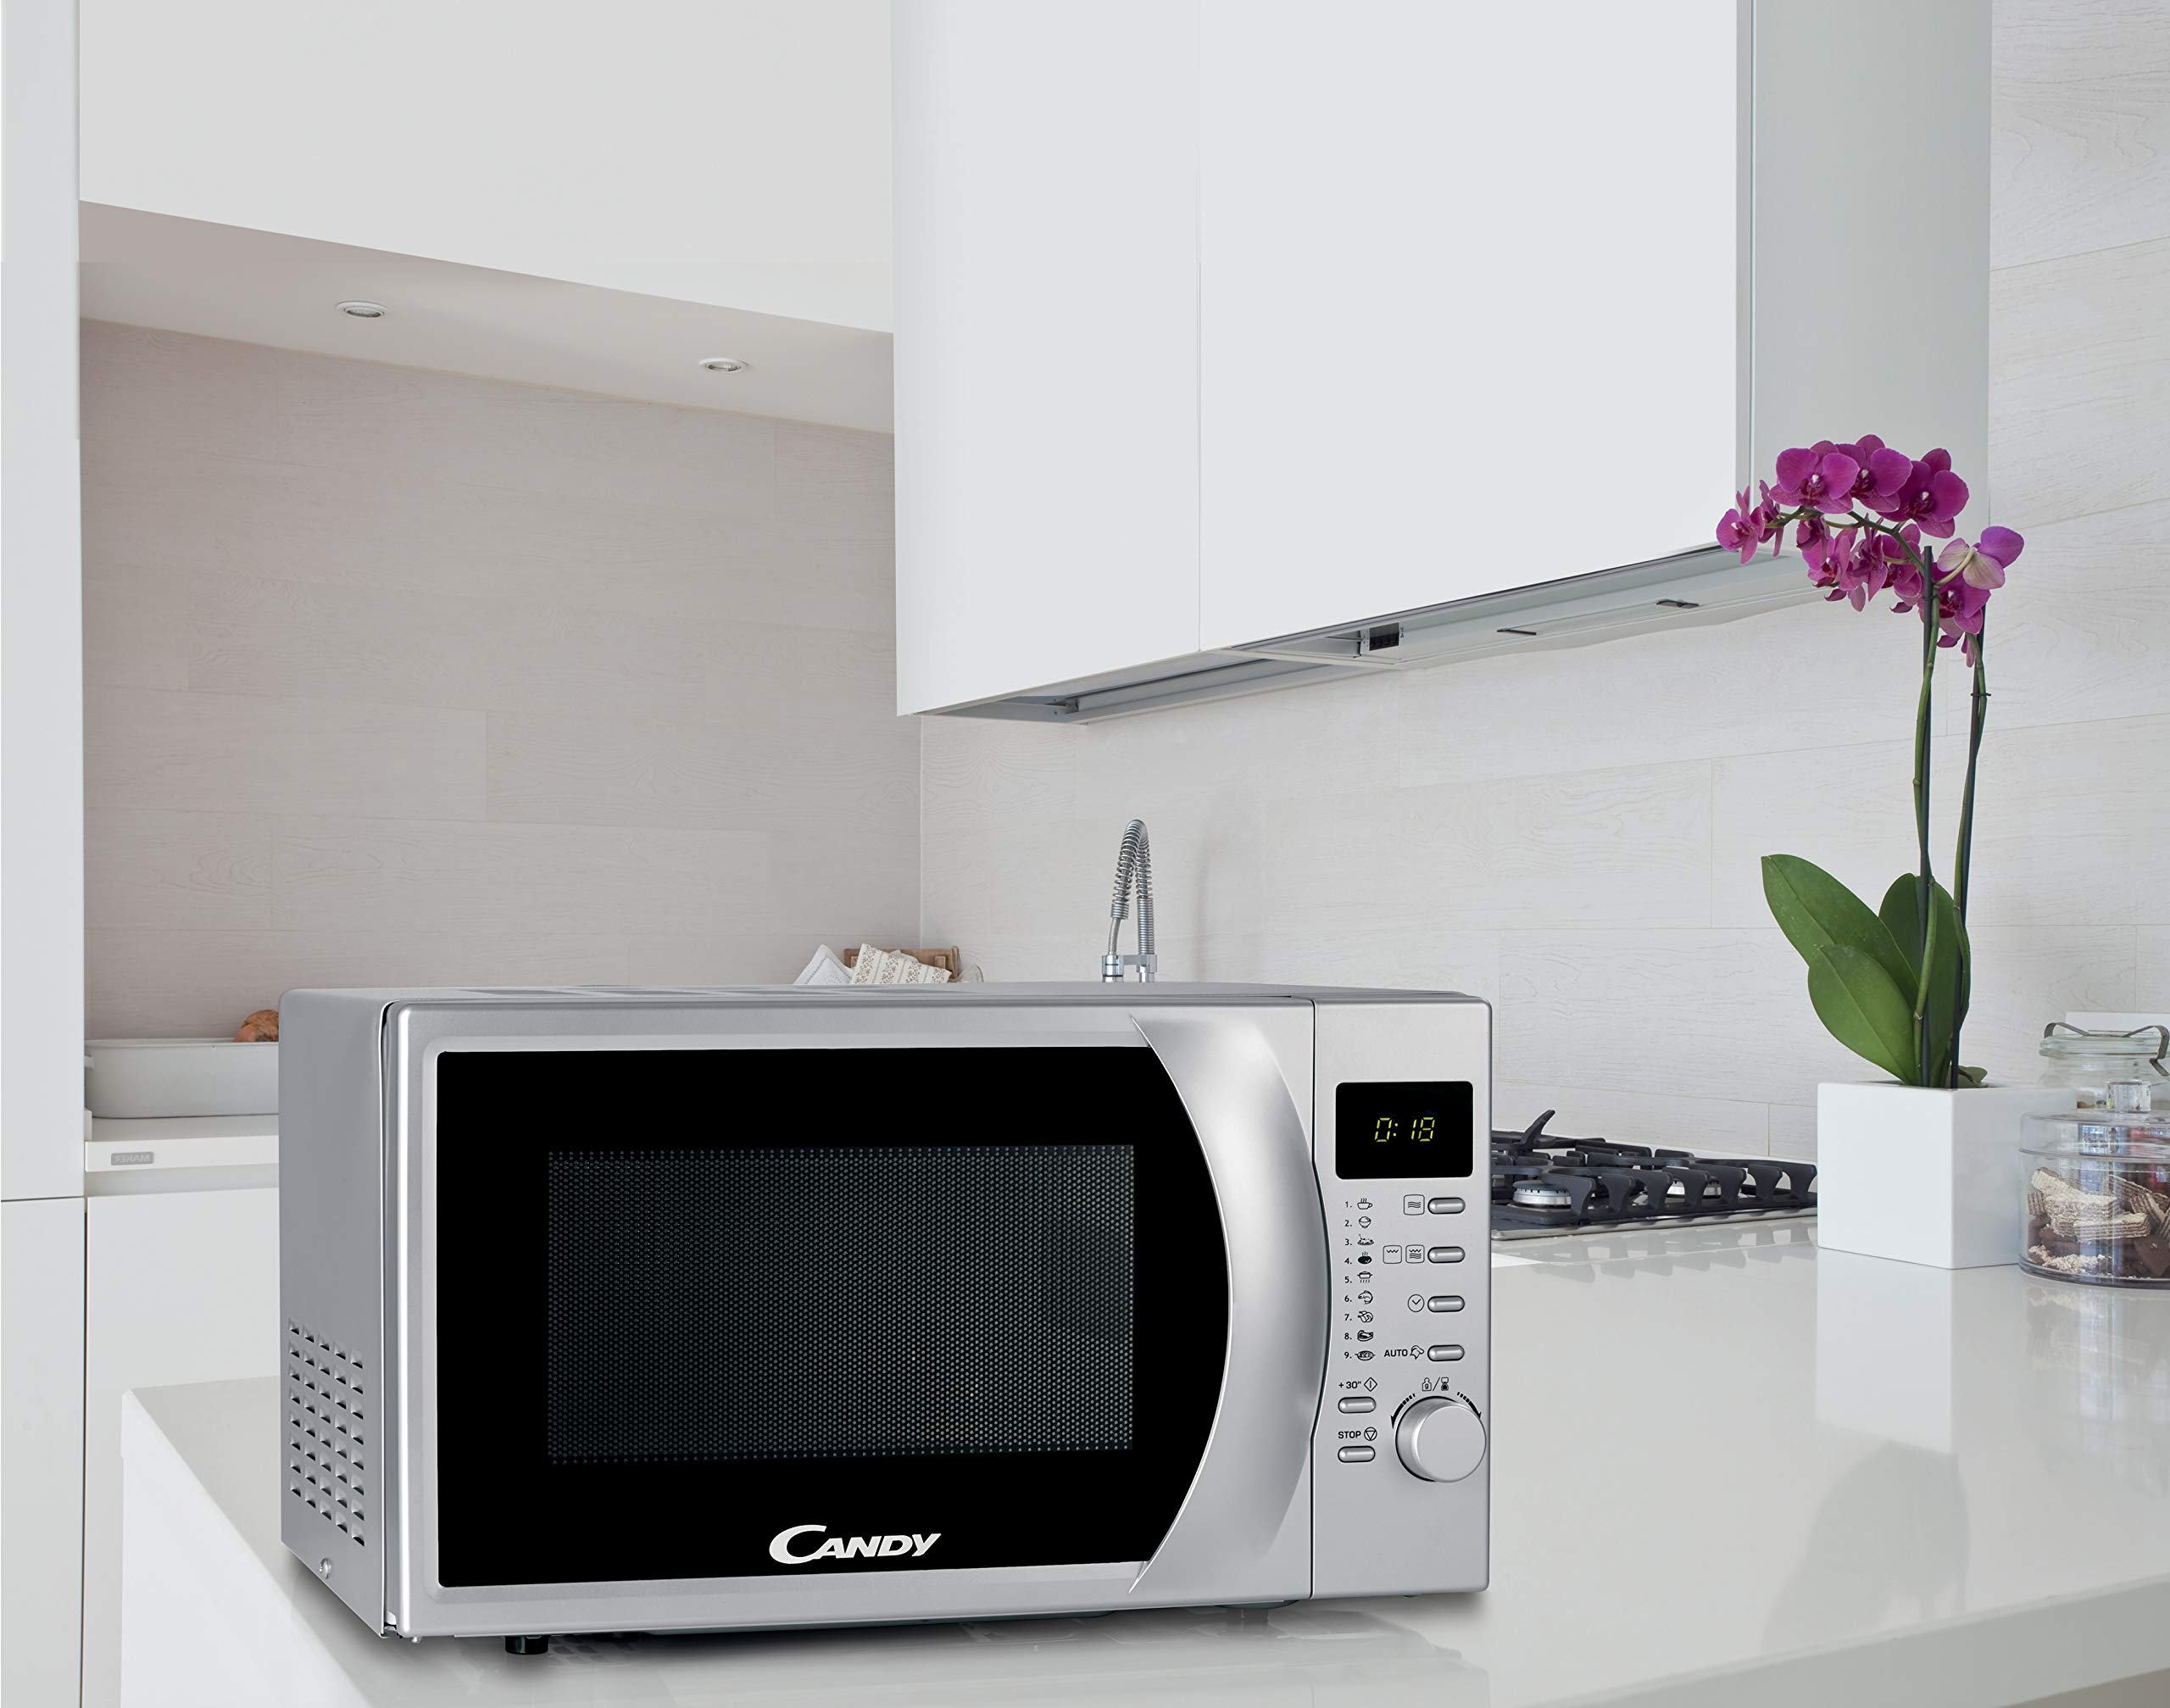 Candy CMG 2071 DS Microondas con grill, Capacidad 20L, Display ...